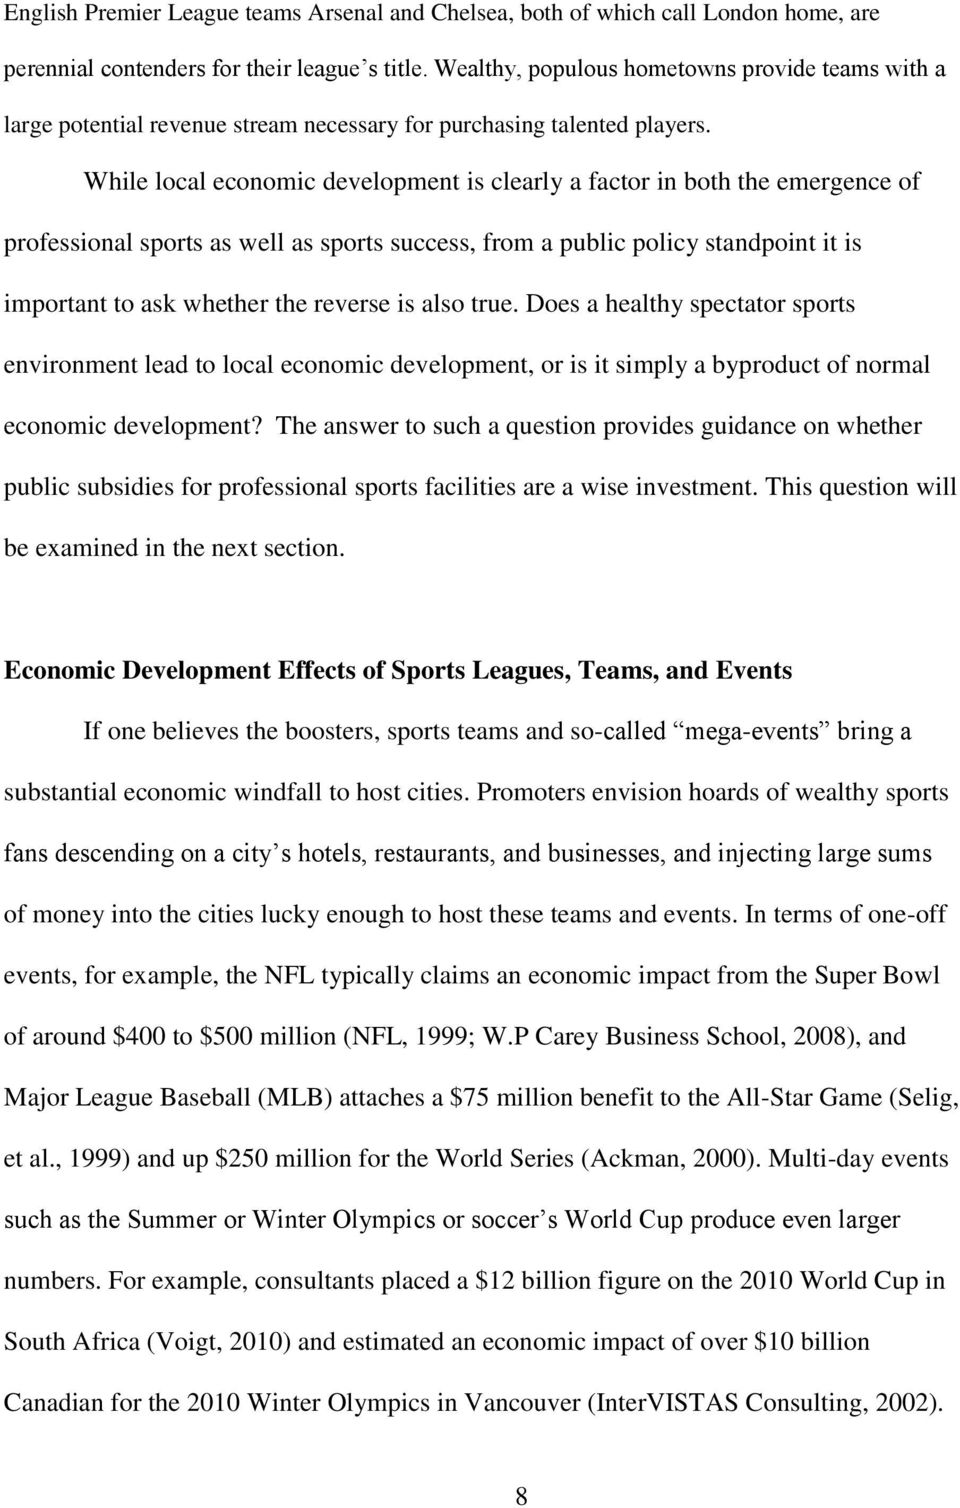 While local economic development is clearly a factor in both the emergence of professional sports as well as sports success, from a public policy standpoint it is important to ask whether the reverse